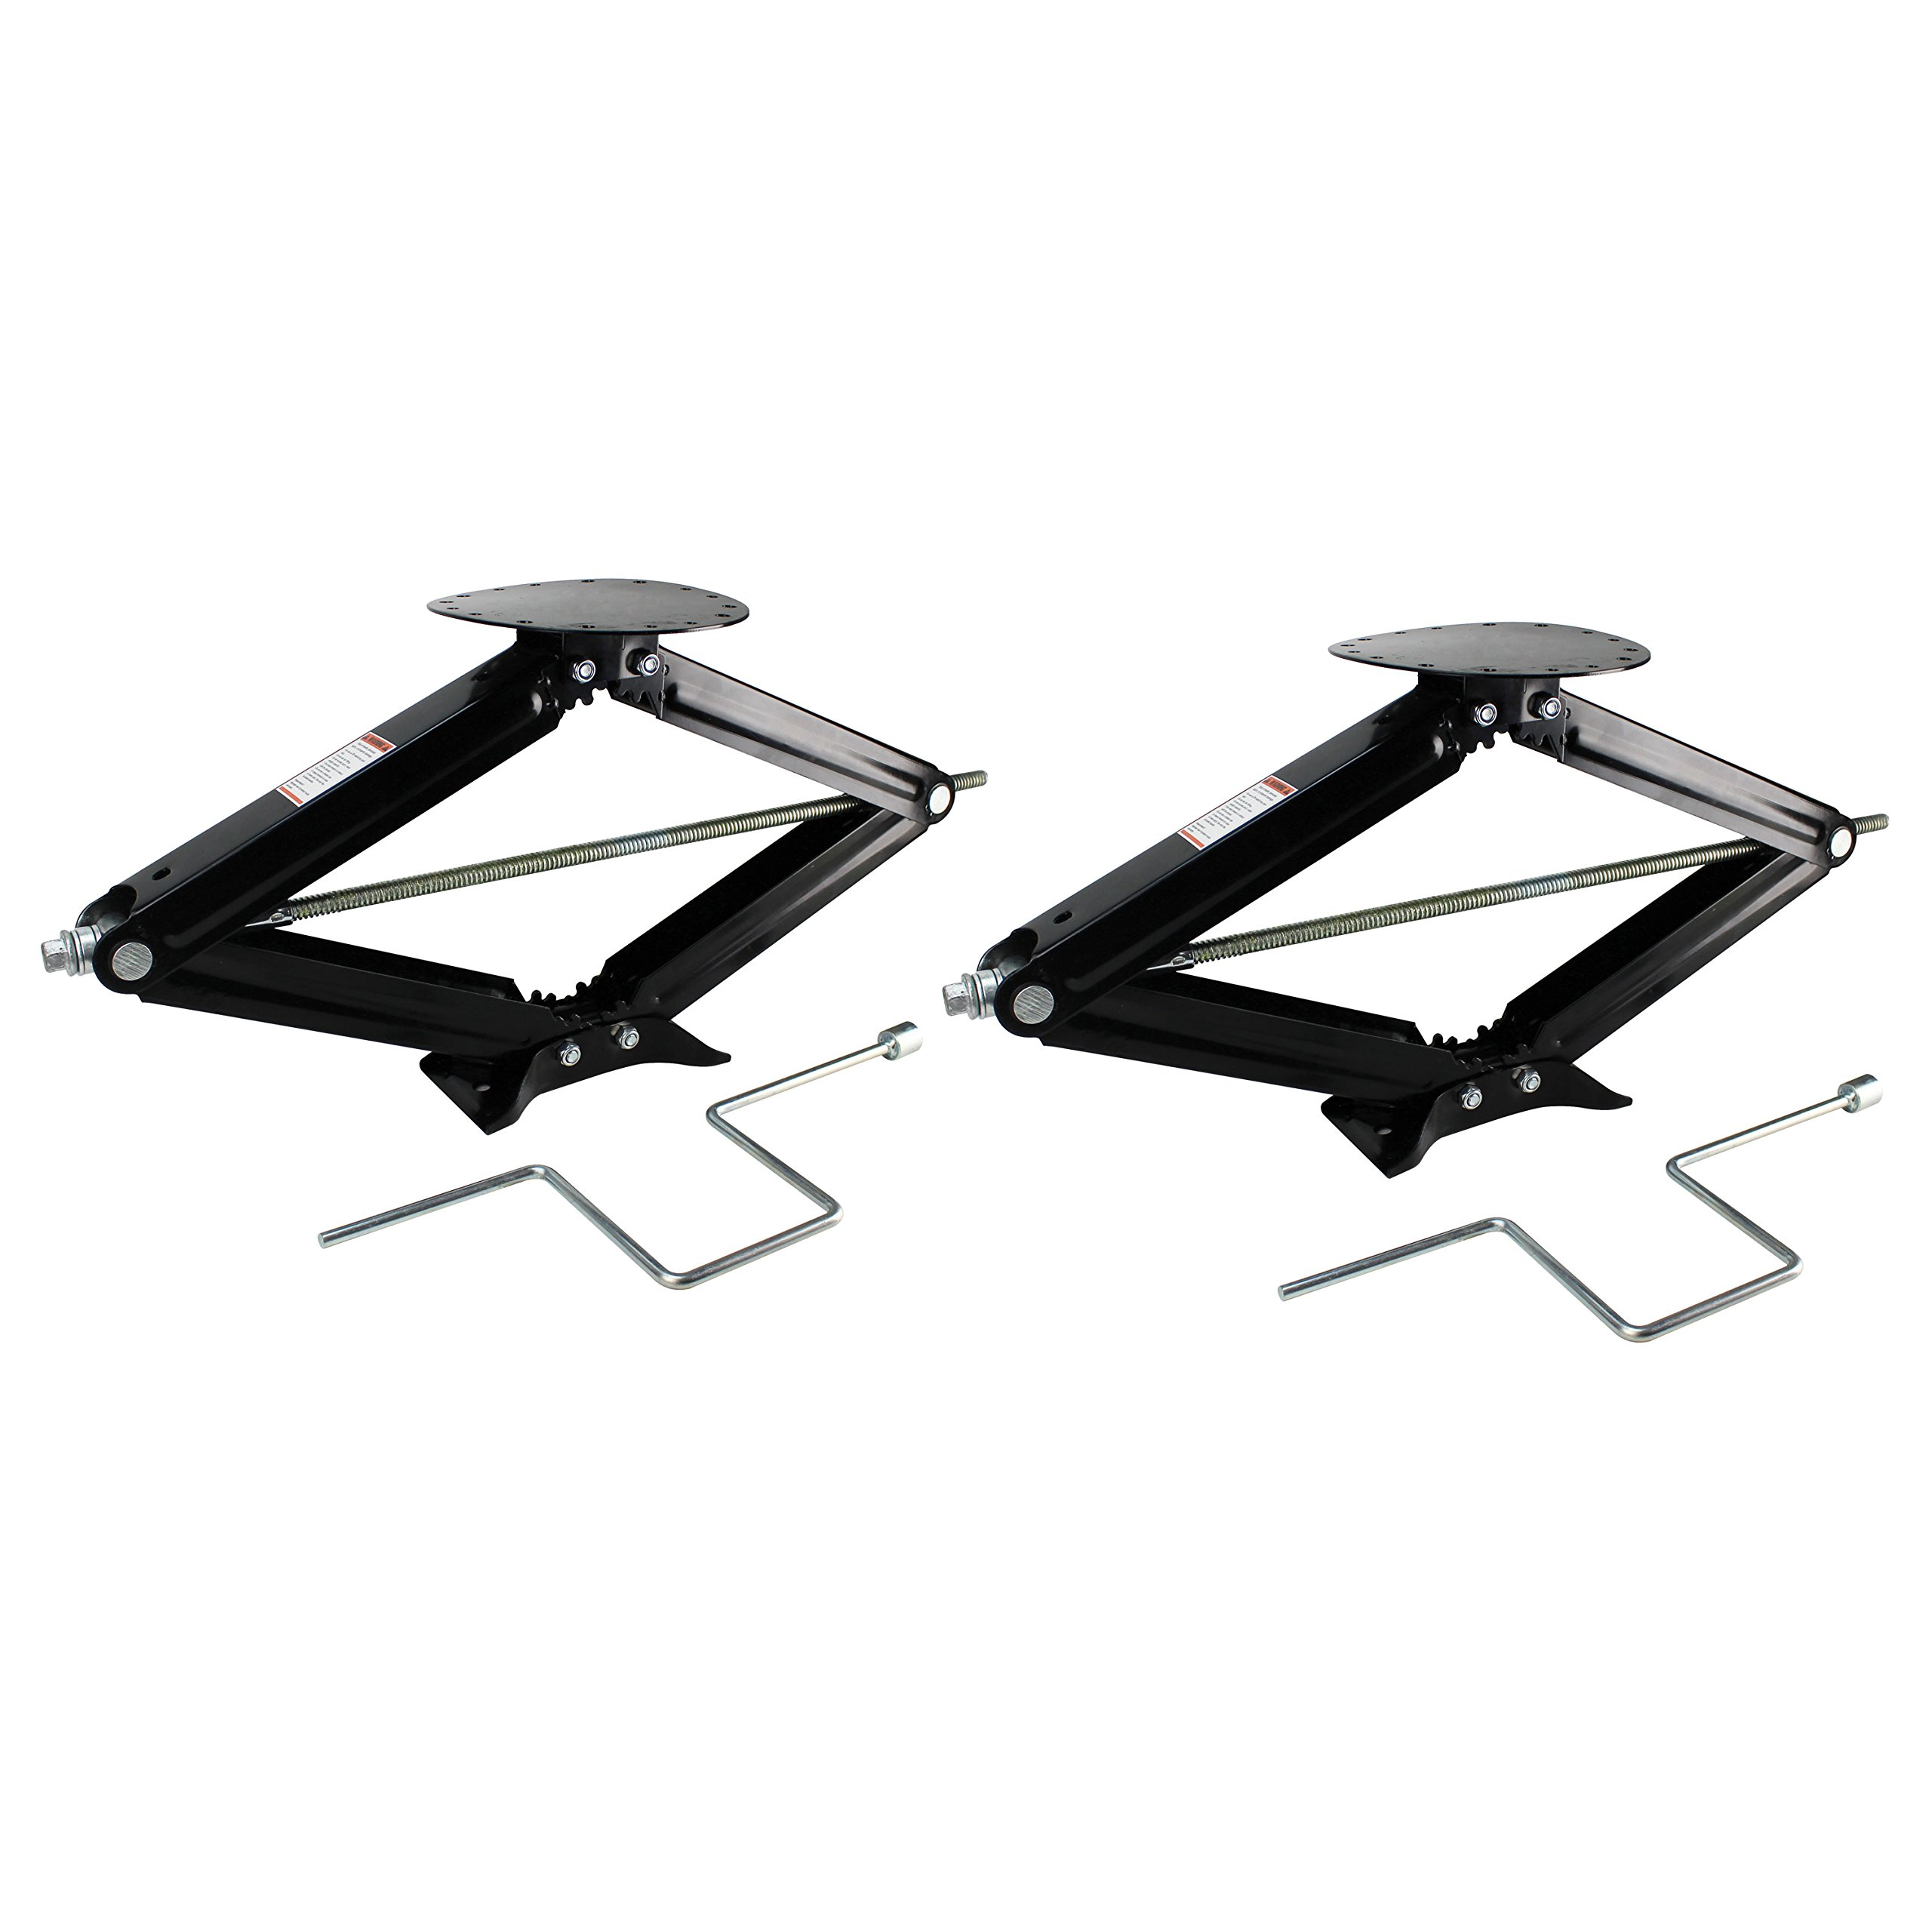 Quick Products QP-RVJ-S30-2PK Stabilizing and Leveling Scissor Jack, 5,000 lb. Max, 30'', 2 Pack